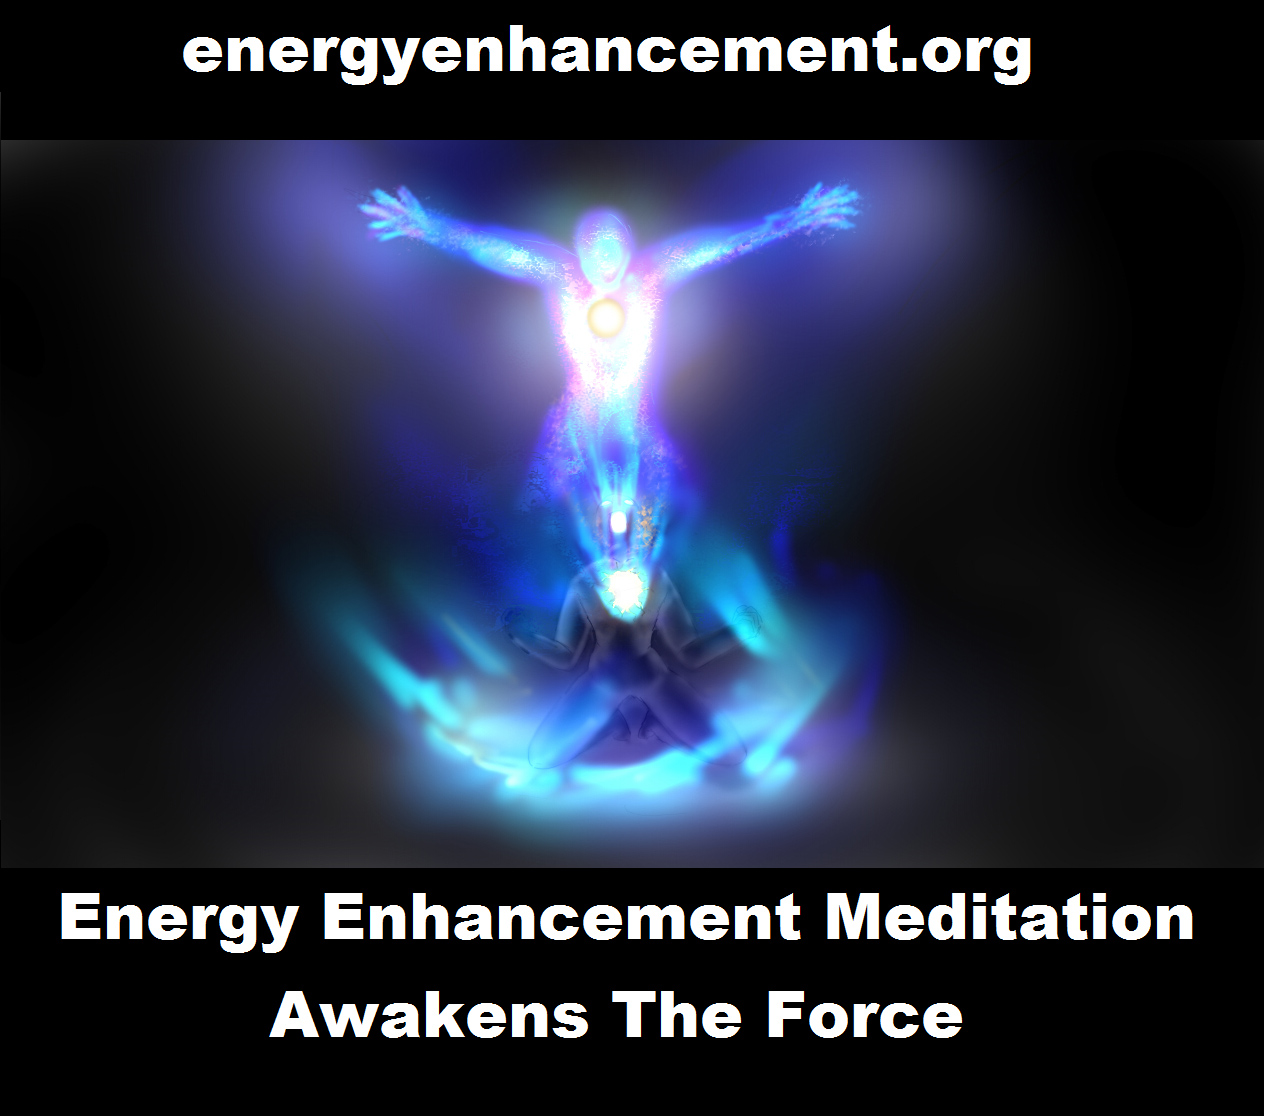 TRANSPERSONAL CHAKRAS - ASCENSION INTO THE CHAKRAS ABOVE THE